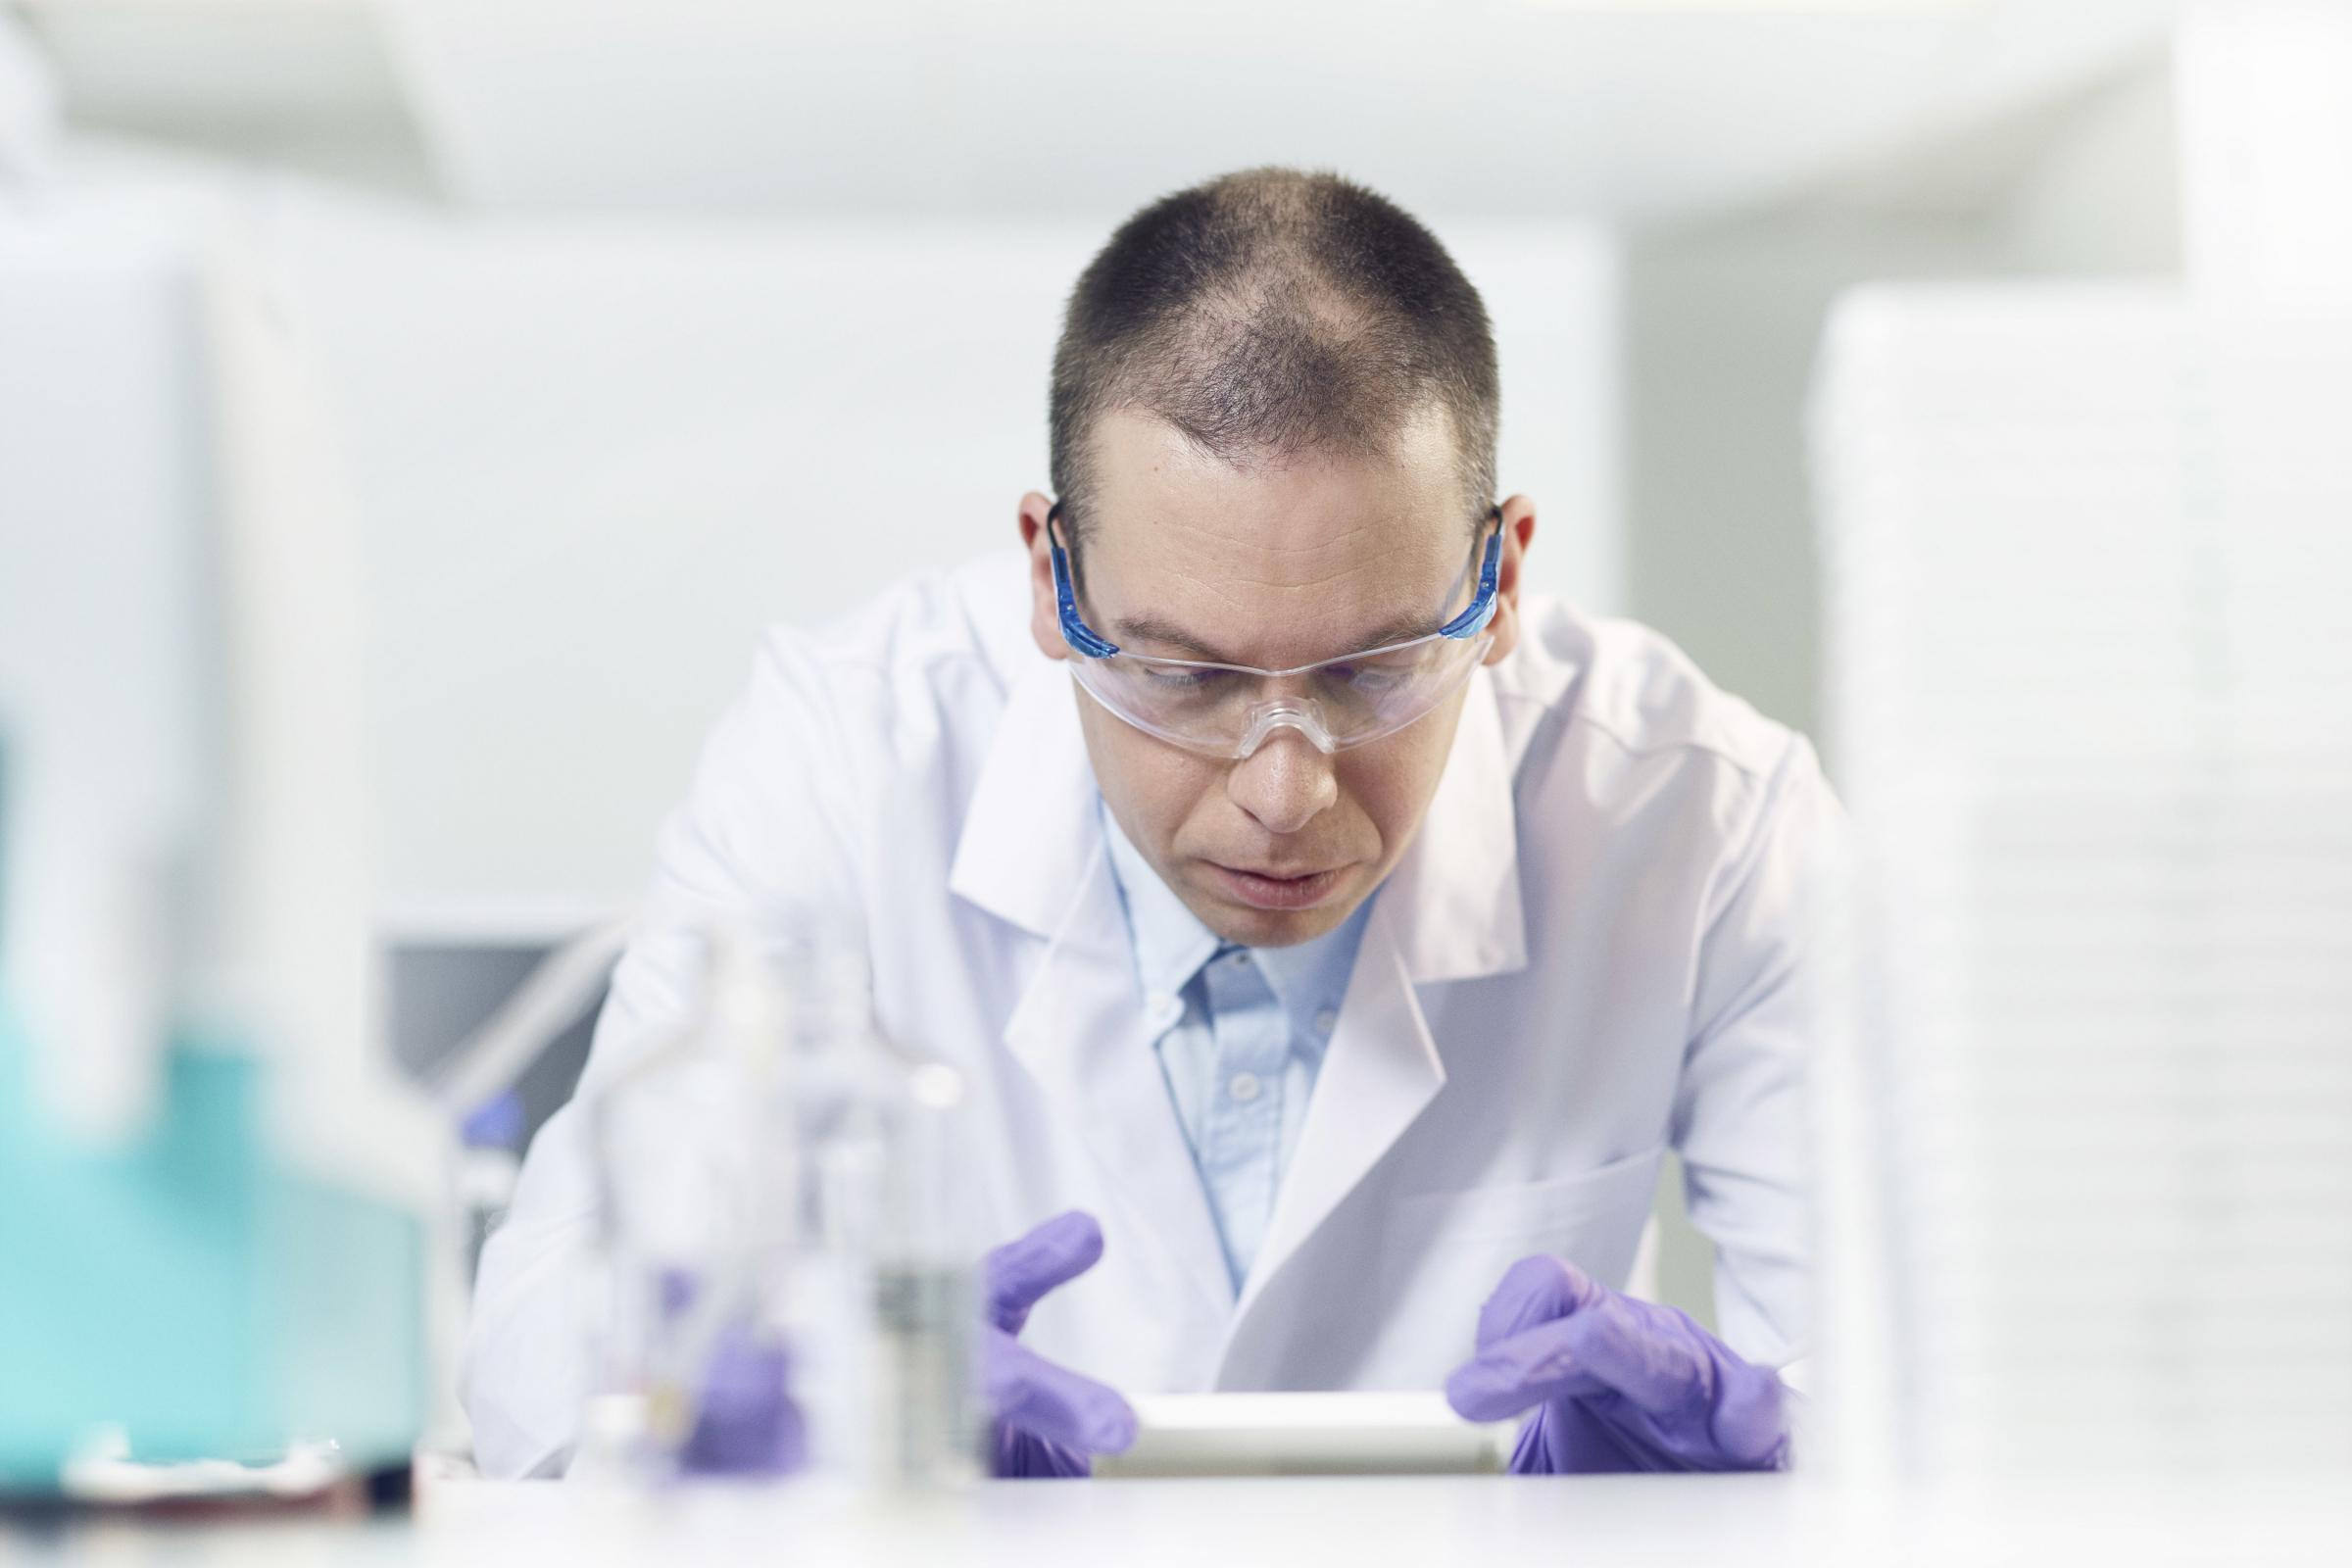 A sciientist in a laboratory